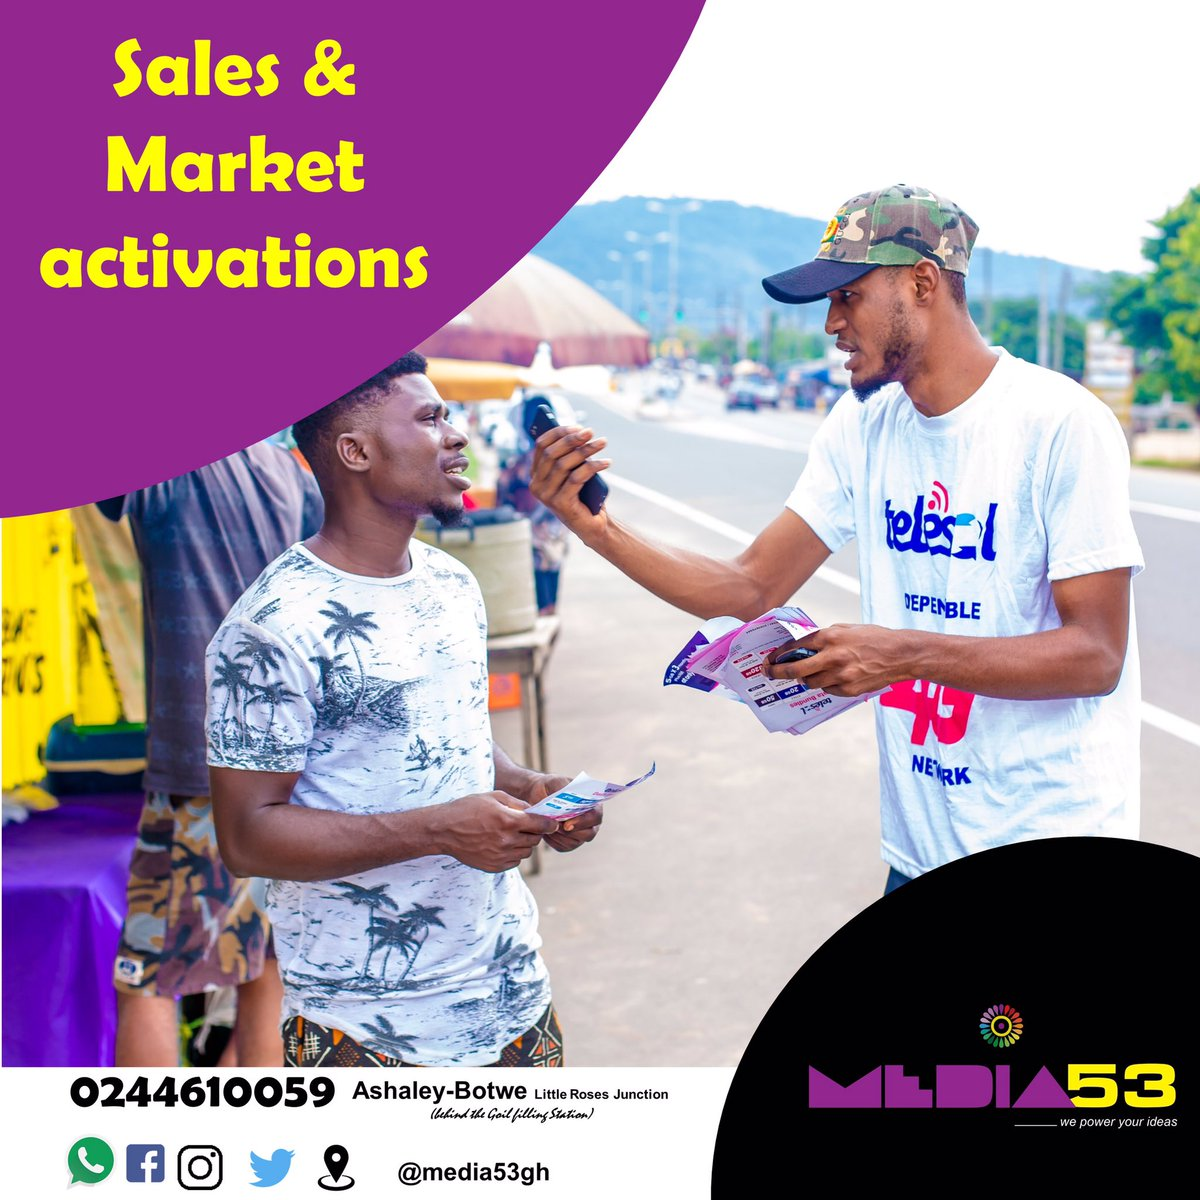 Let us help you sale your brand and products                               #Media53gh   #ghanawedding   #GhanaNews   #media   #productions    #events https://t.co/W8gwCCG0VE